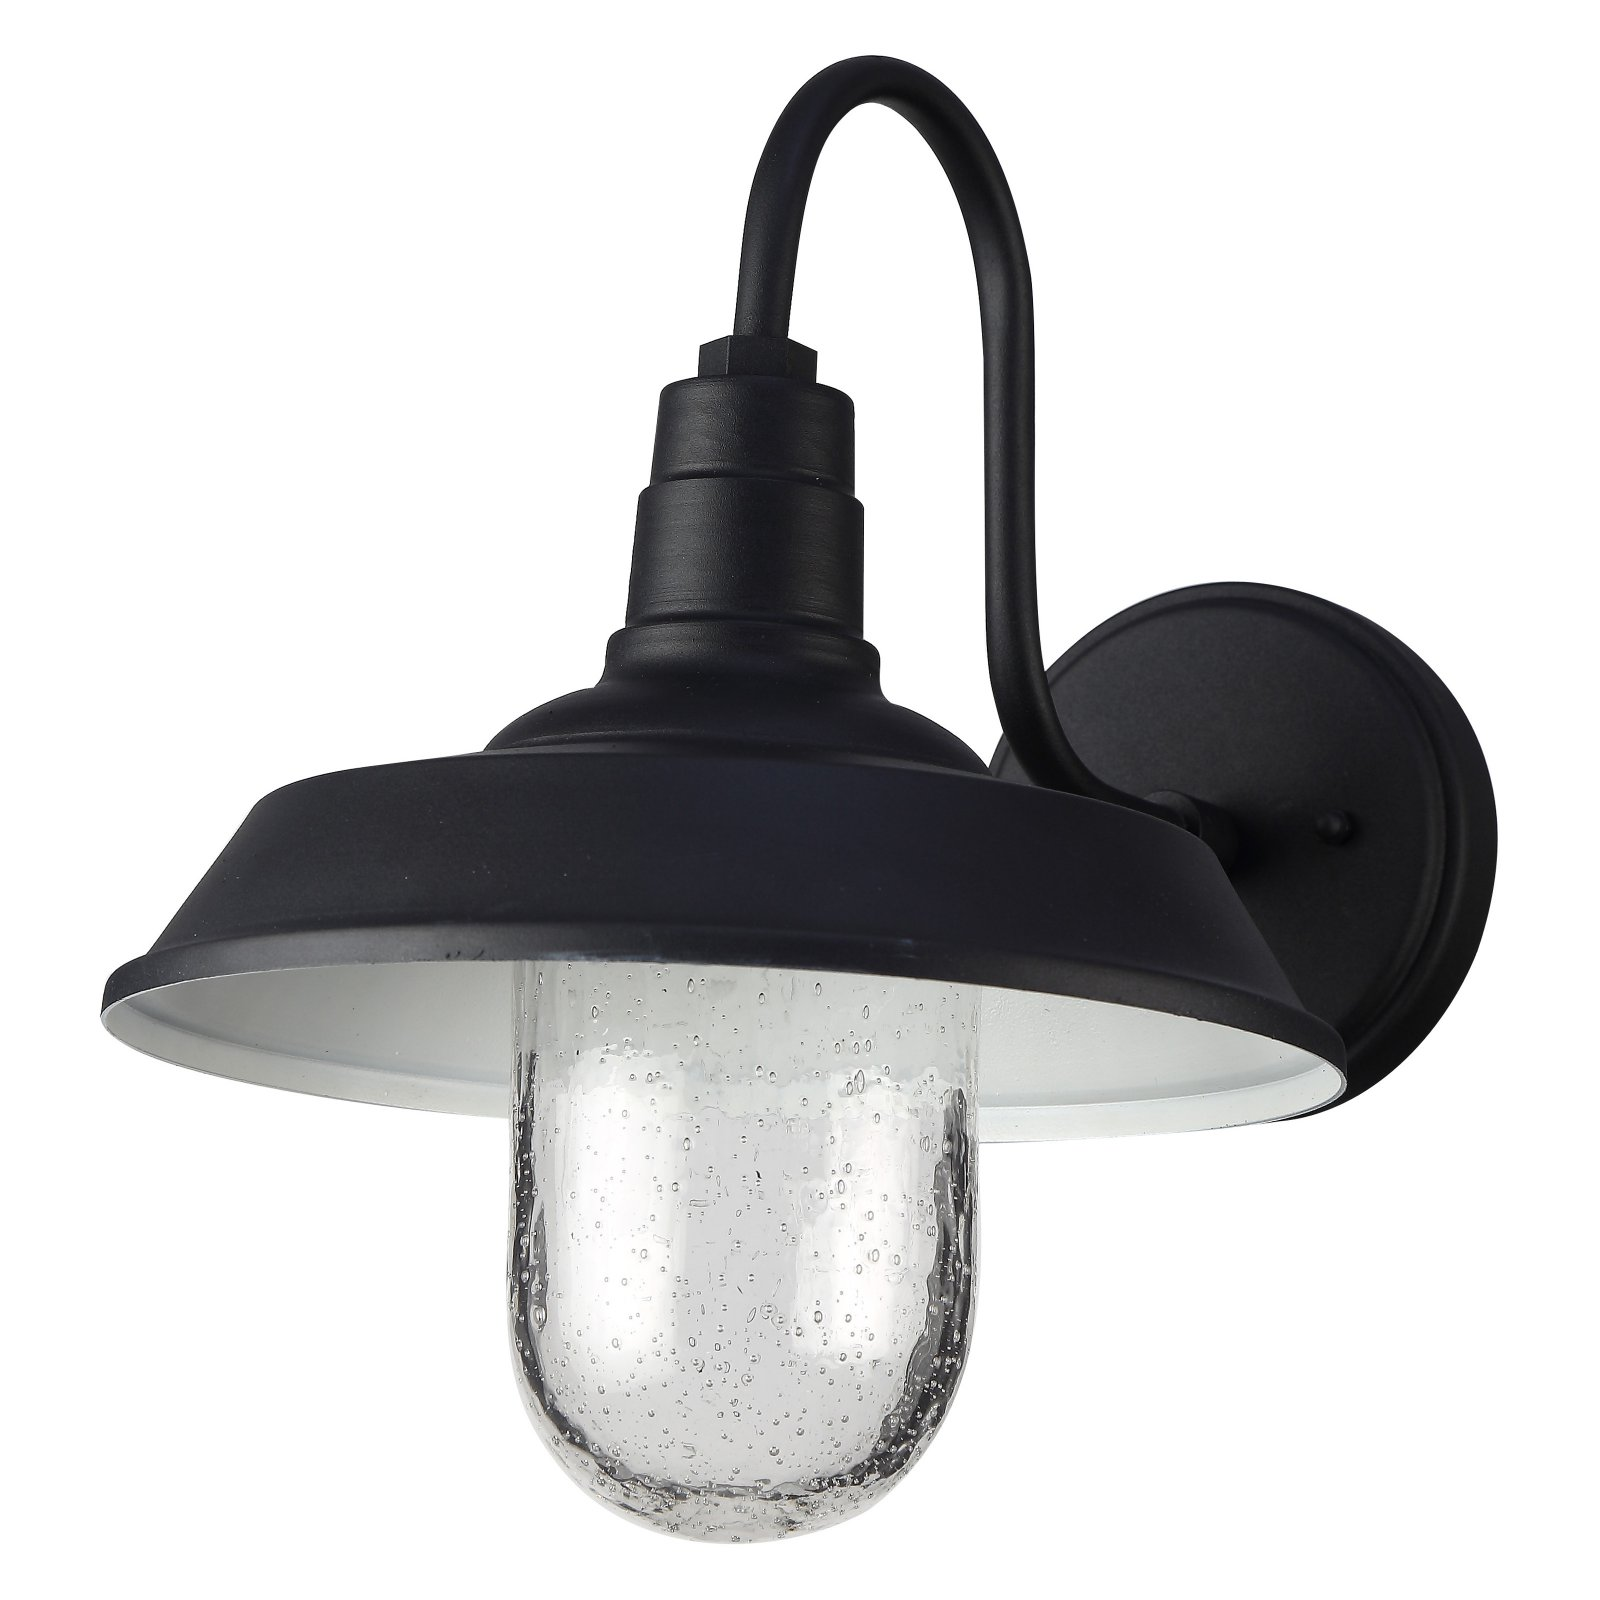 Living District LDOD1500 LED Outdoor Wall Lamp